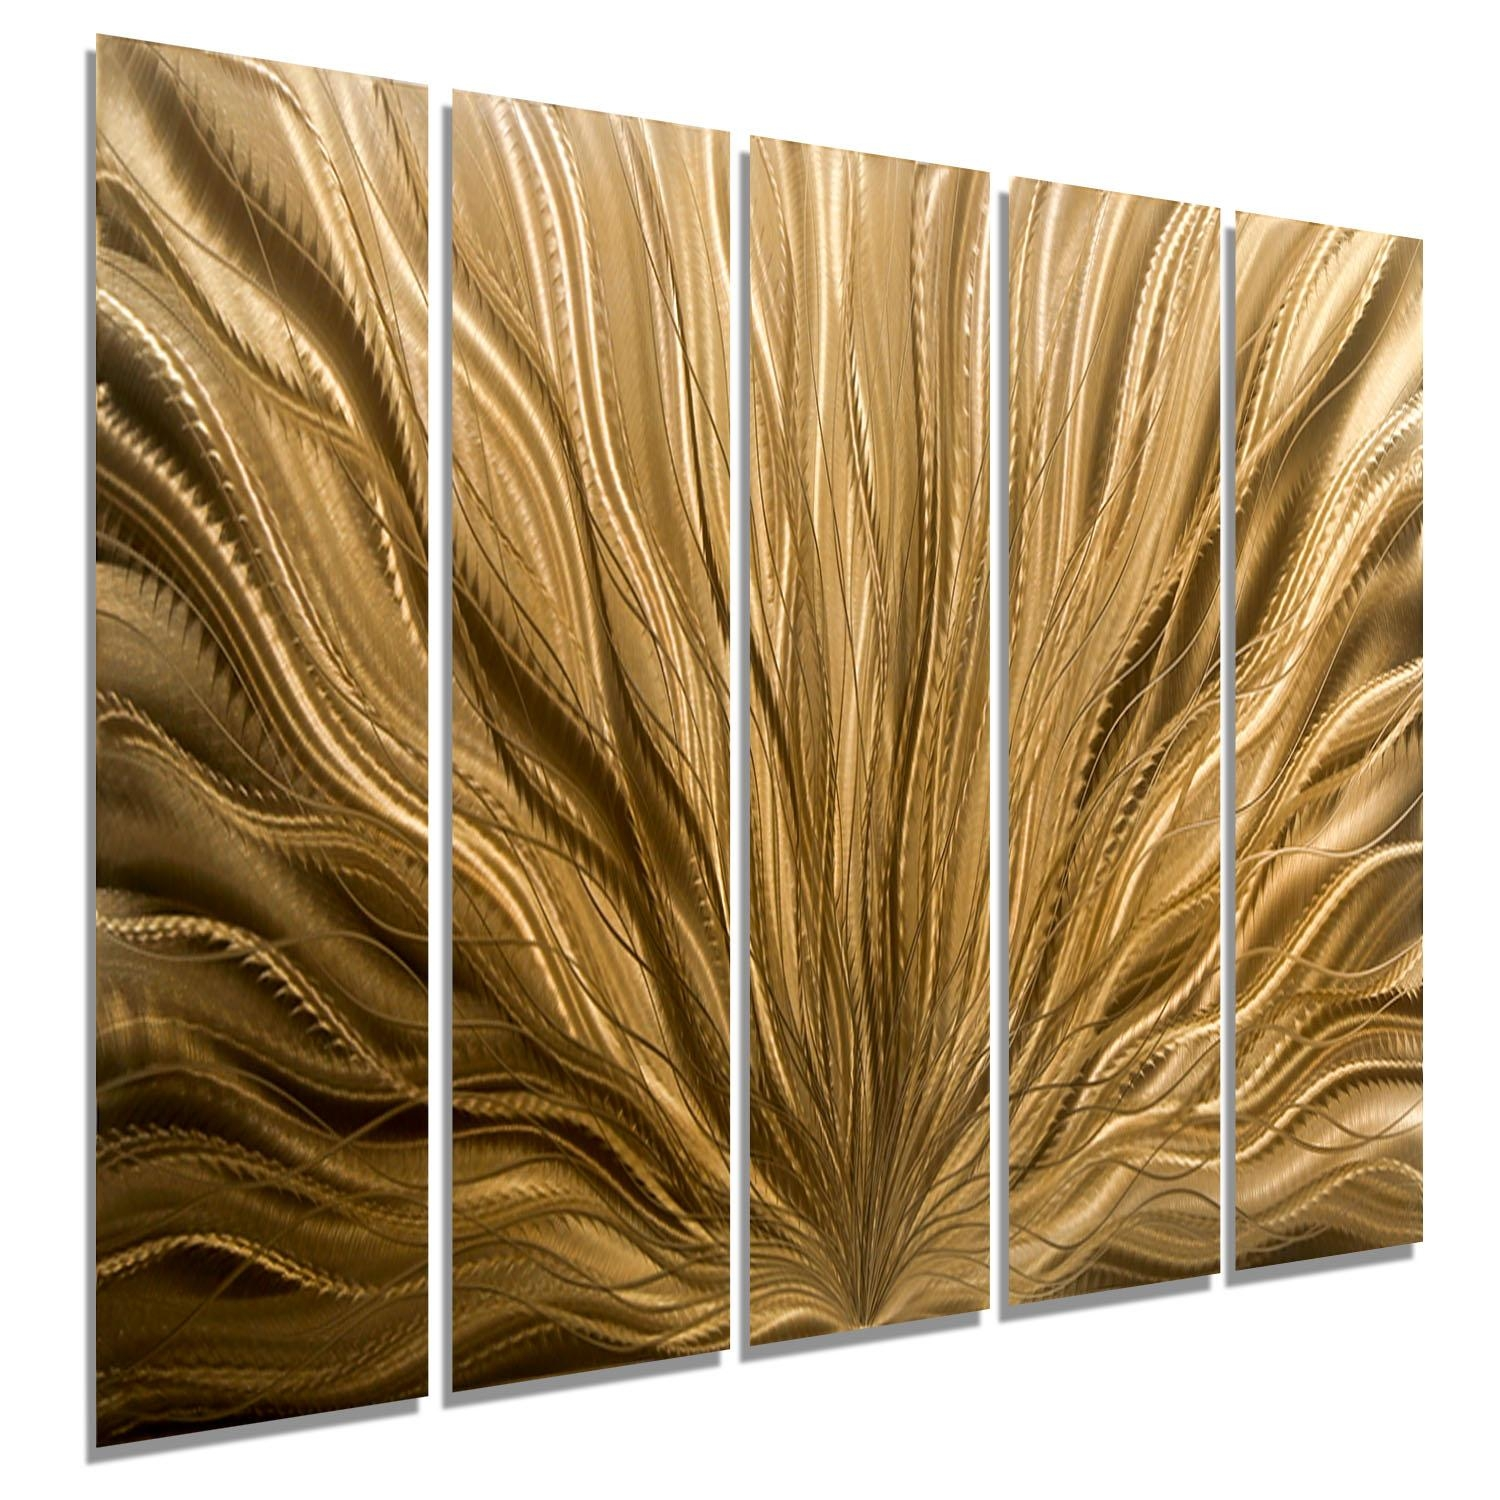 Copper Plumage Epic – Extra Large Light Copper Abstract Metal Wall Inside Large Copper Wall Art (View 20 of 20)